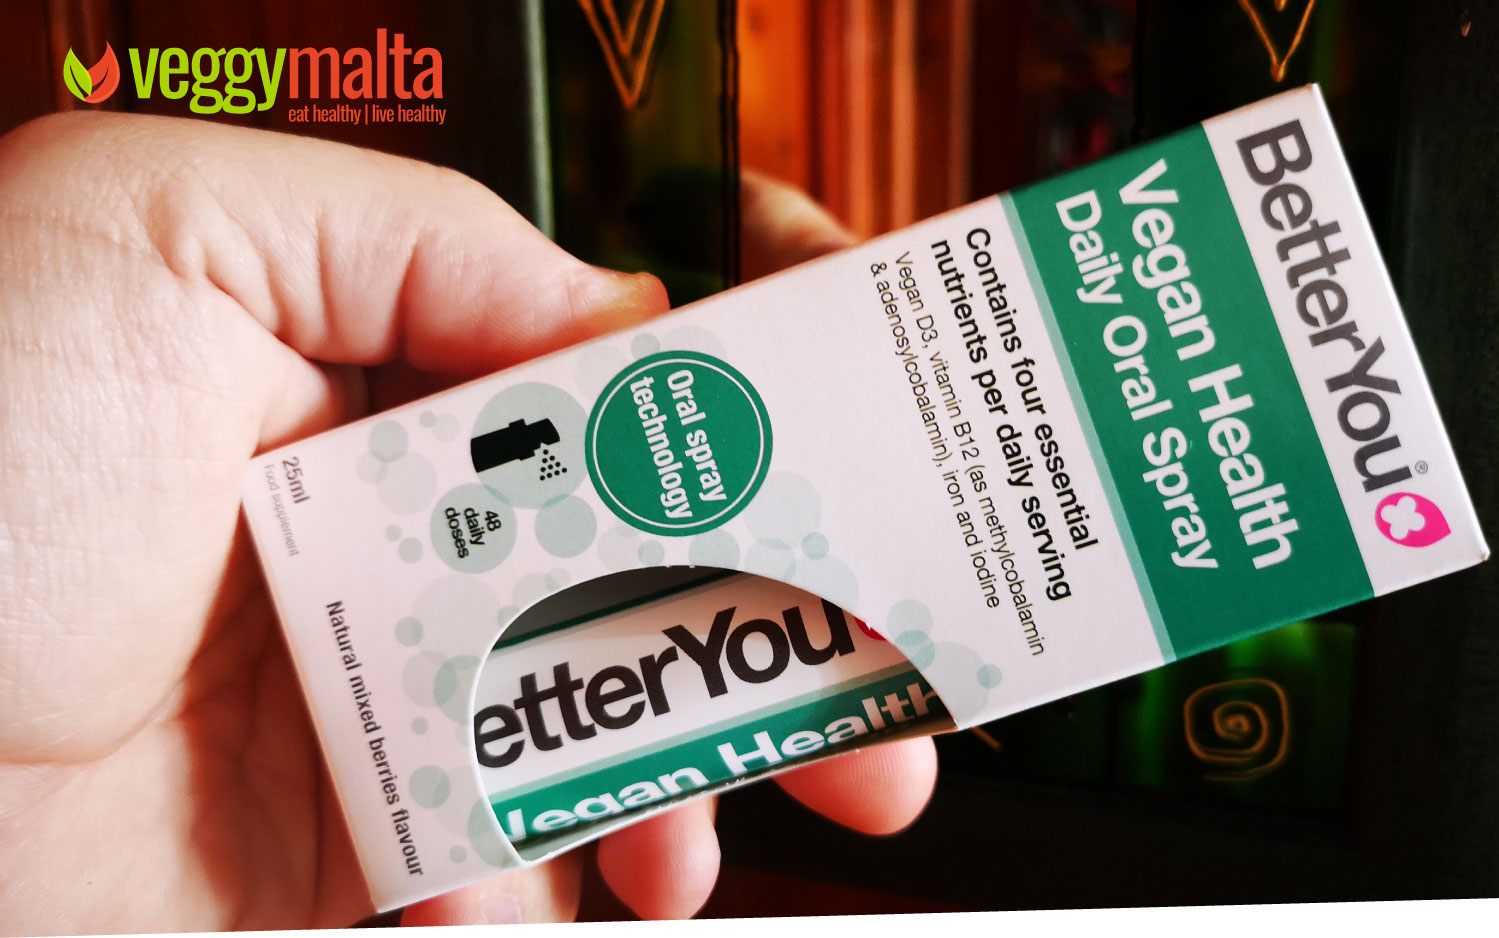 betteryou-vegan-oral-spray